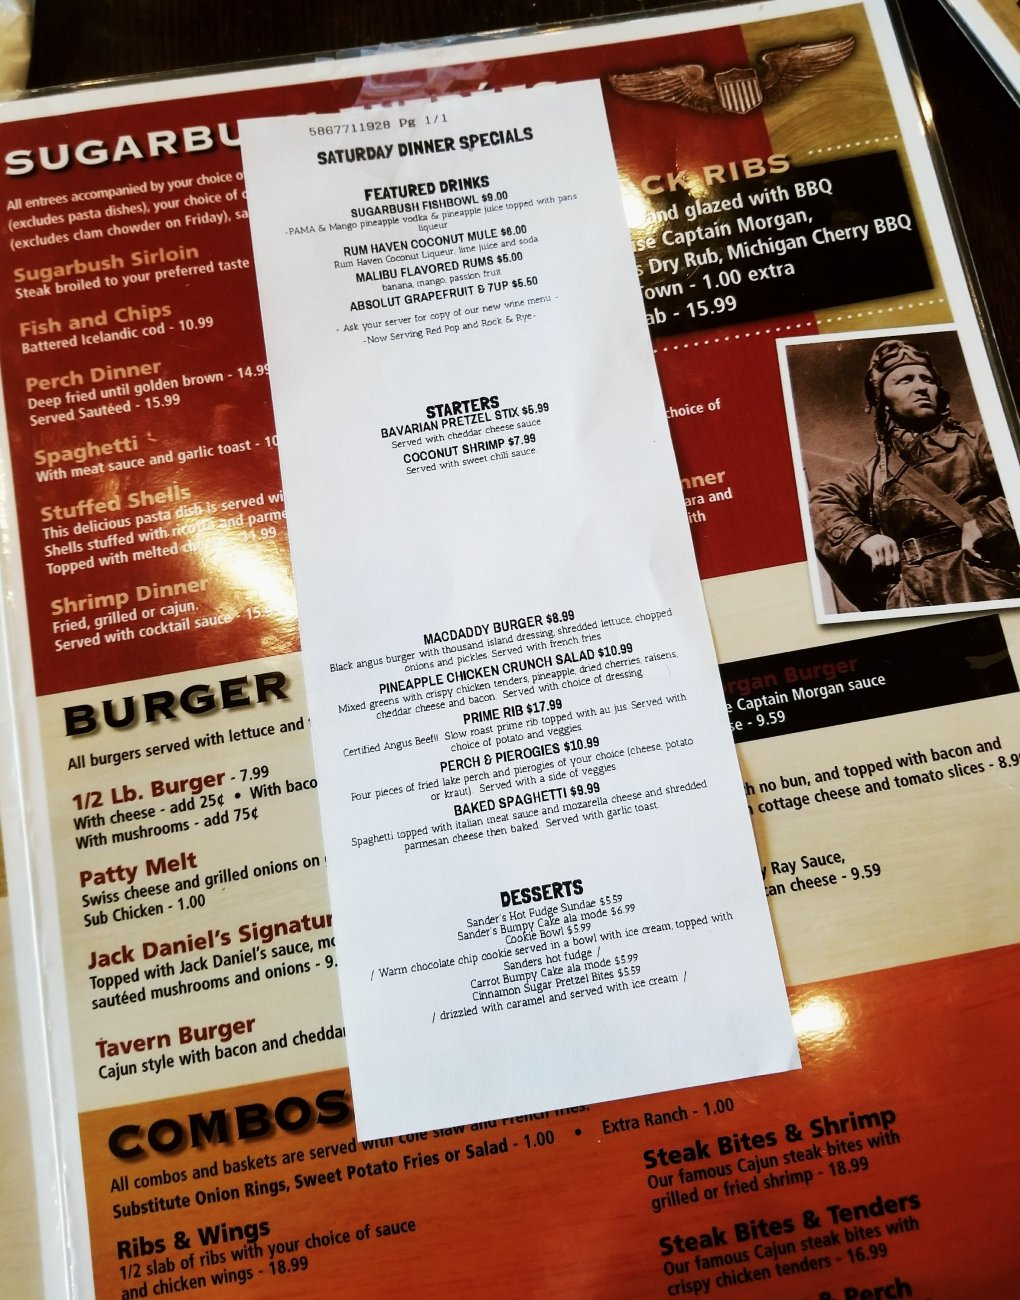 Sugarbush Tavern Saturday Dinner Specials